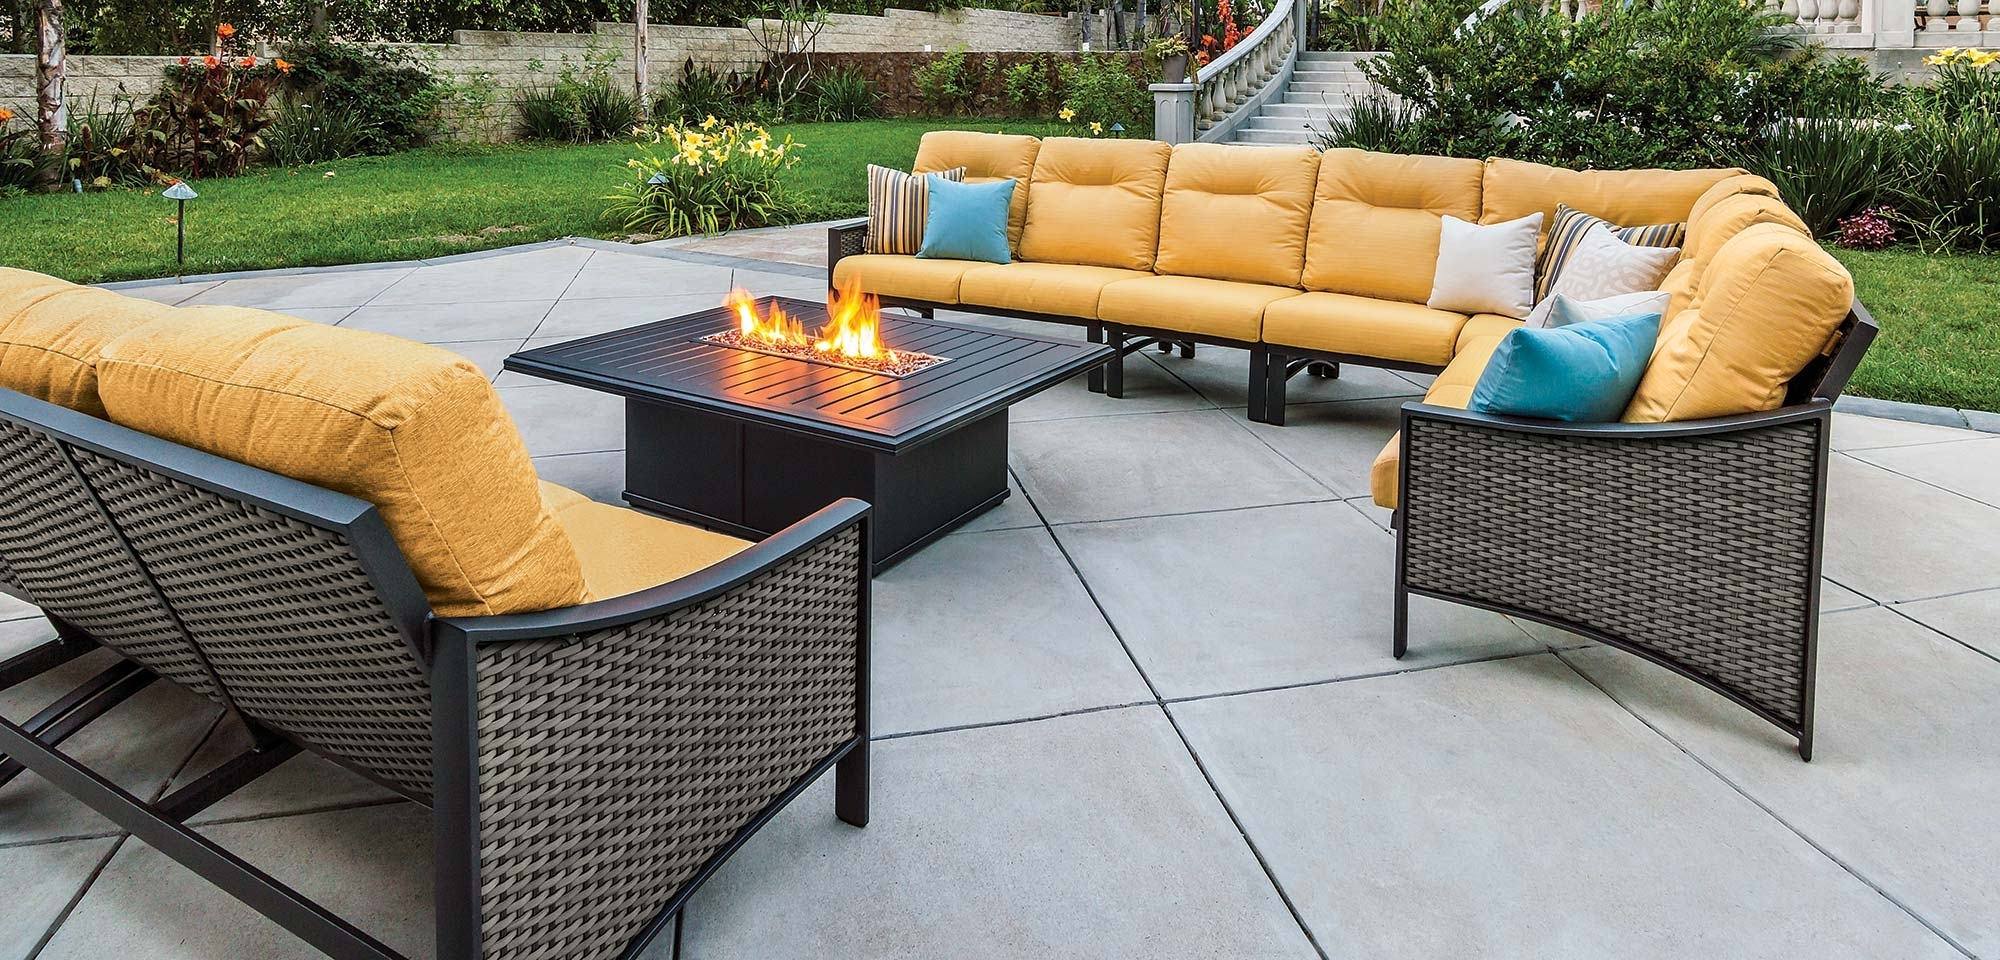 Most Recent Inexpensive Patio Conversation Sets Throughout Engaging Cheap Patio Sectional 13 Outdoor Sofa Furniture All Weather (View 14 of 20)